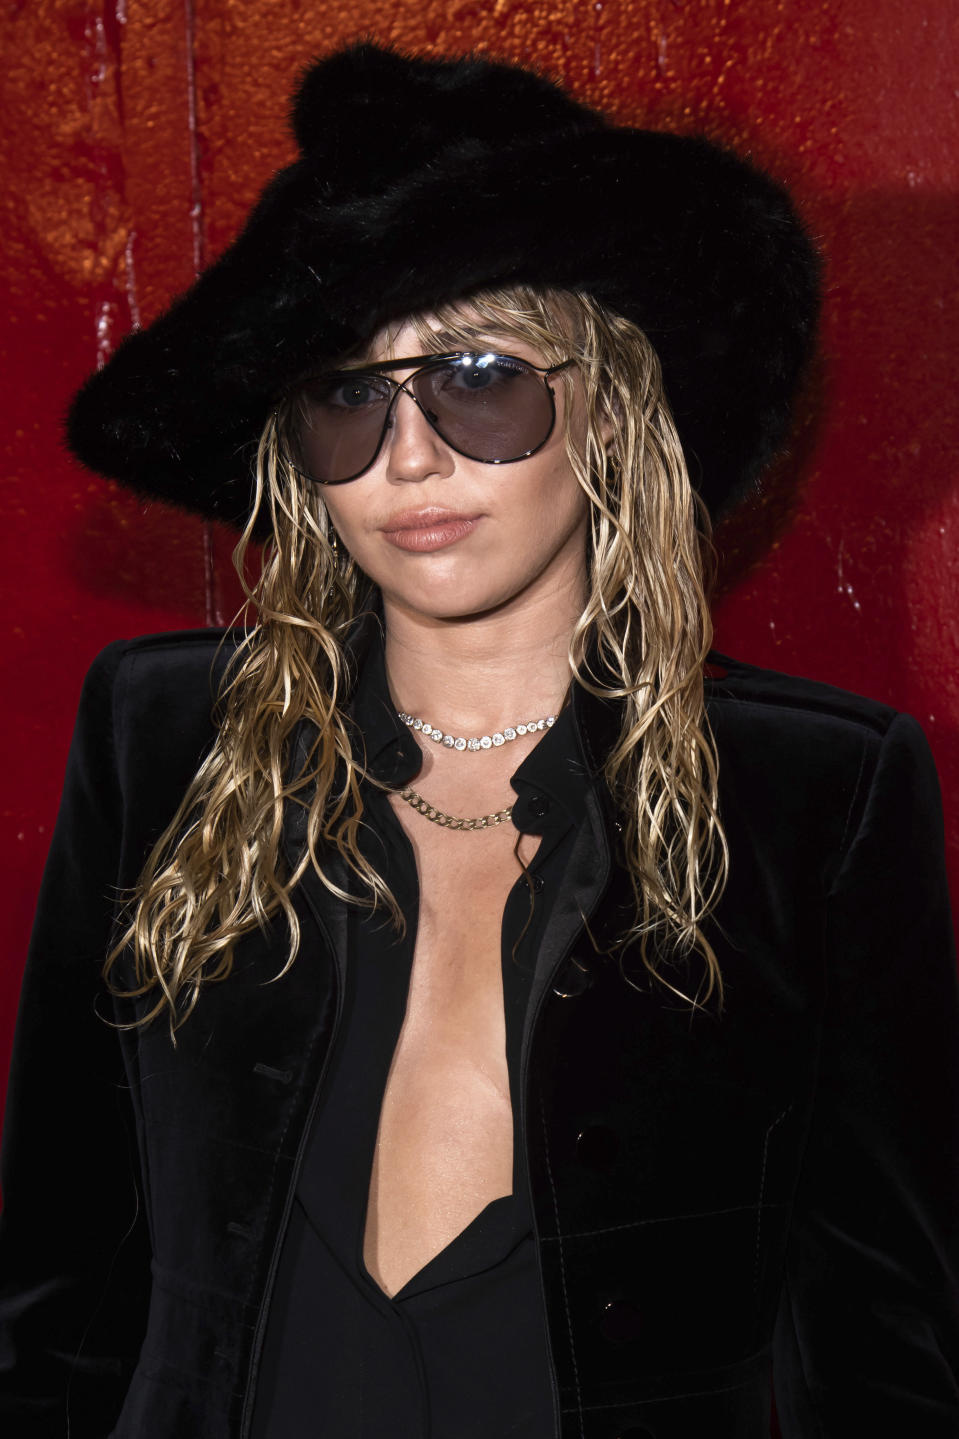 Miley Cyrus arrives to the Tom Ford show during Fashion Week on Monday, Sept. 9, 2019 in New York. (Photo by Charles Sykes/Invision/AP)